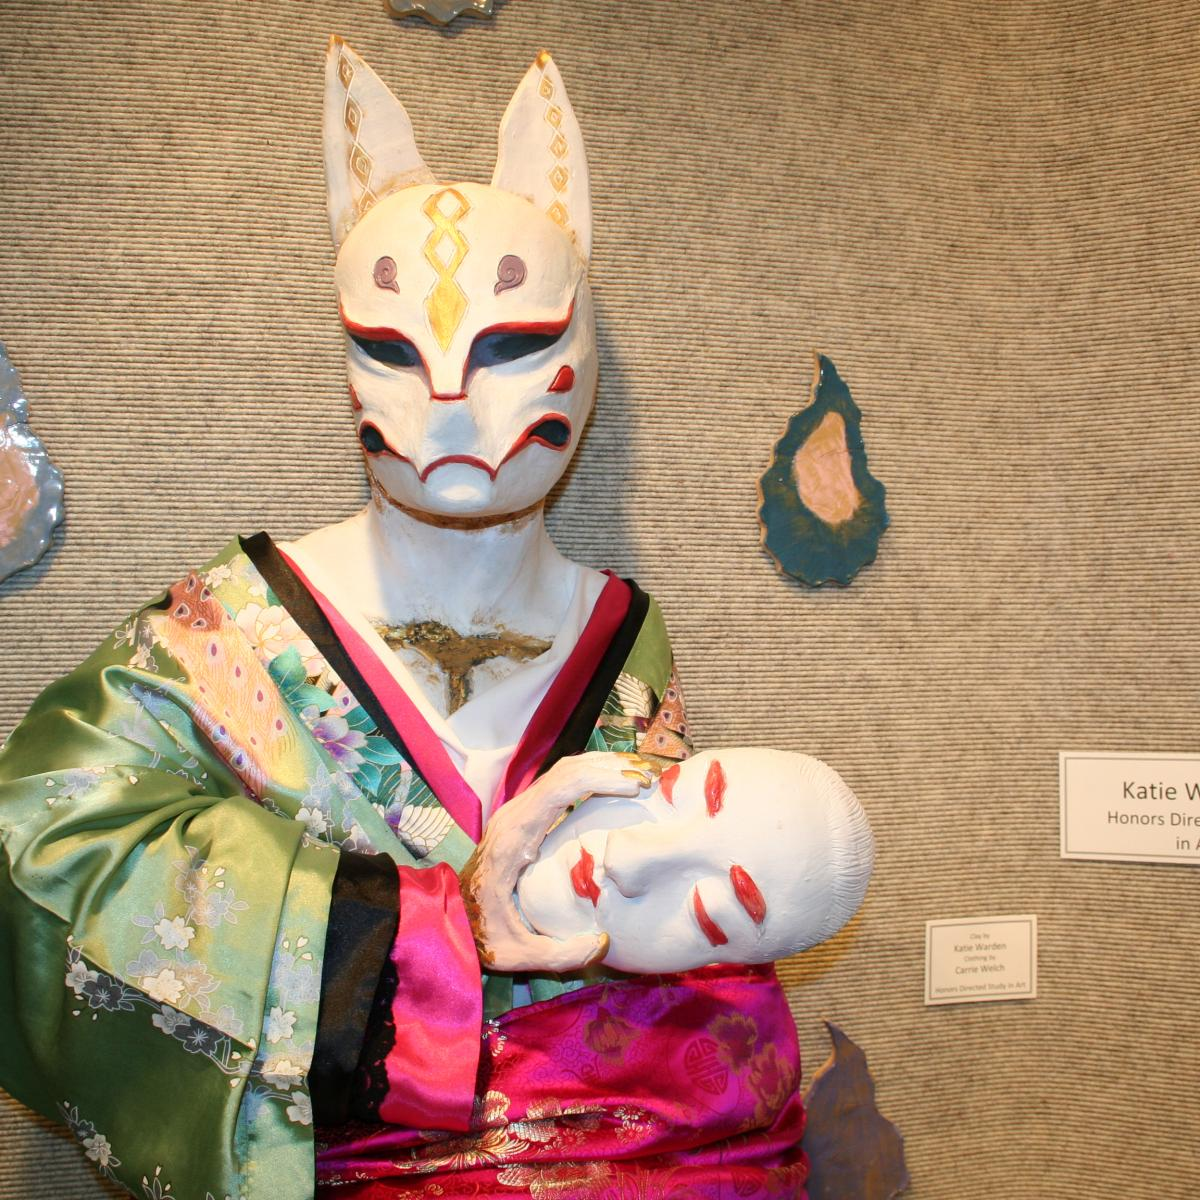 Ceramic cat mask with female body in kimono holding human mask